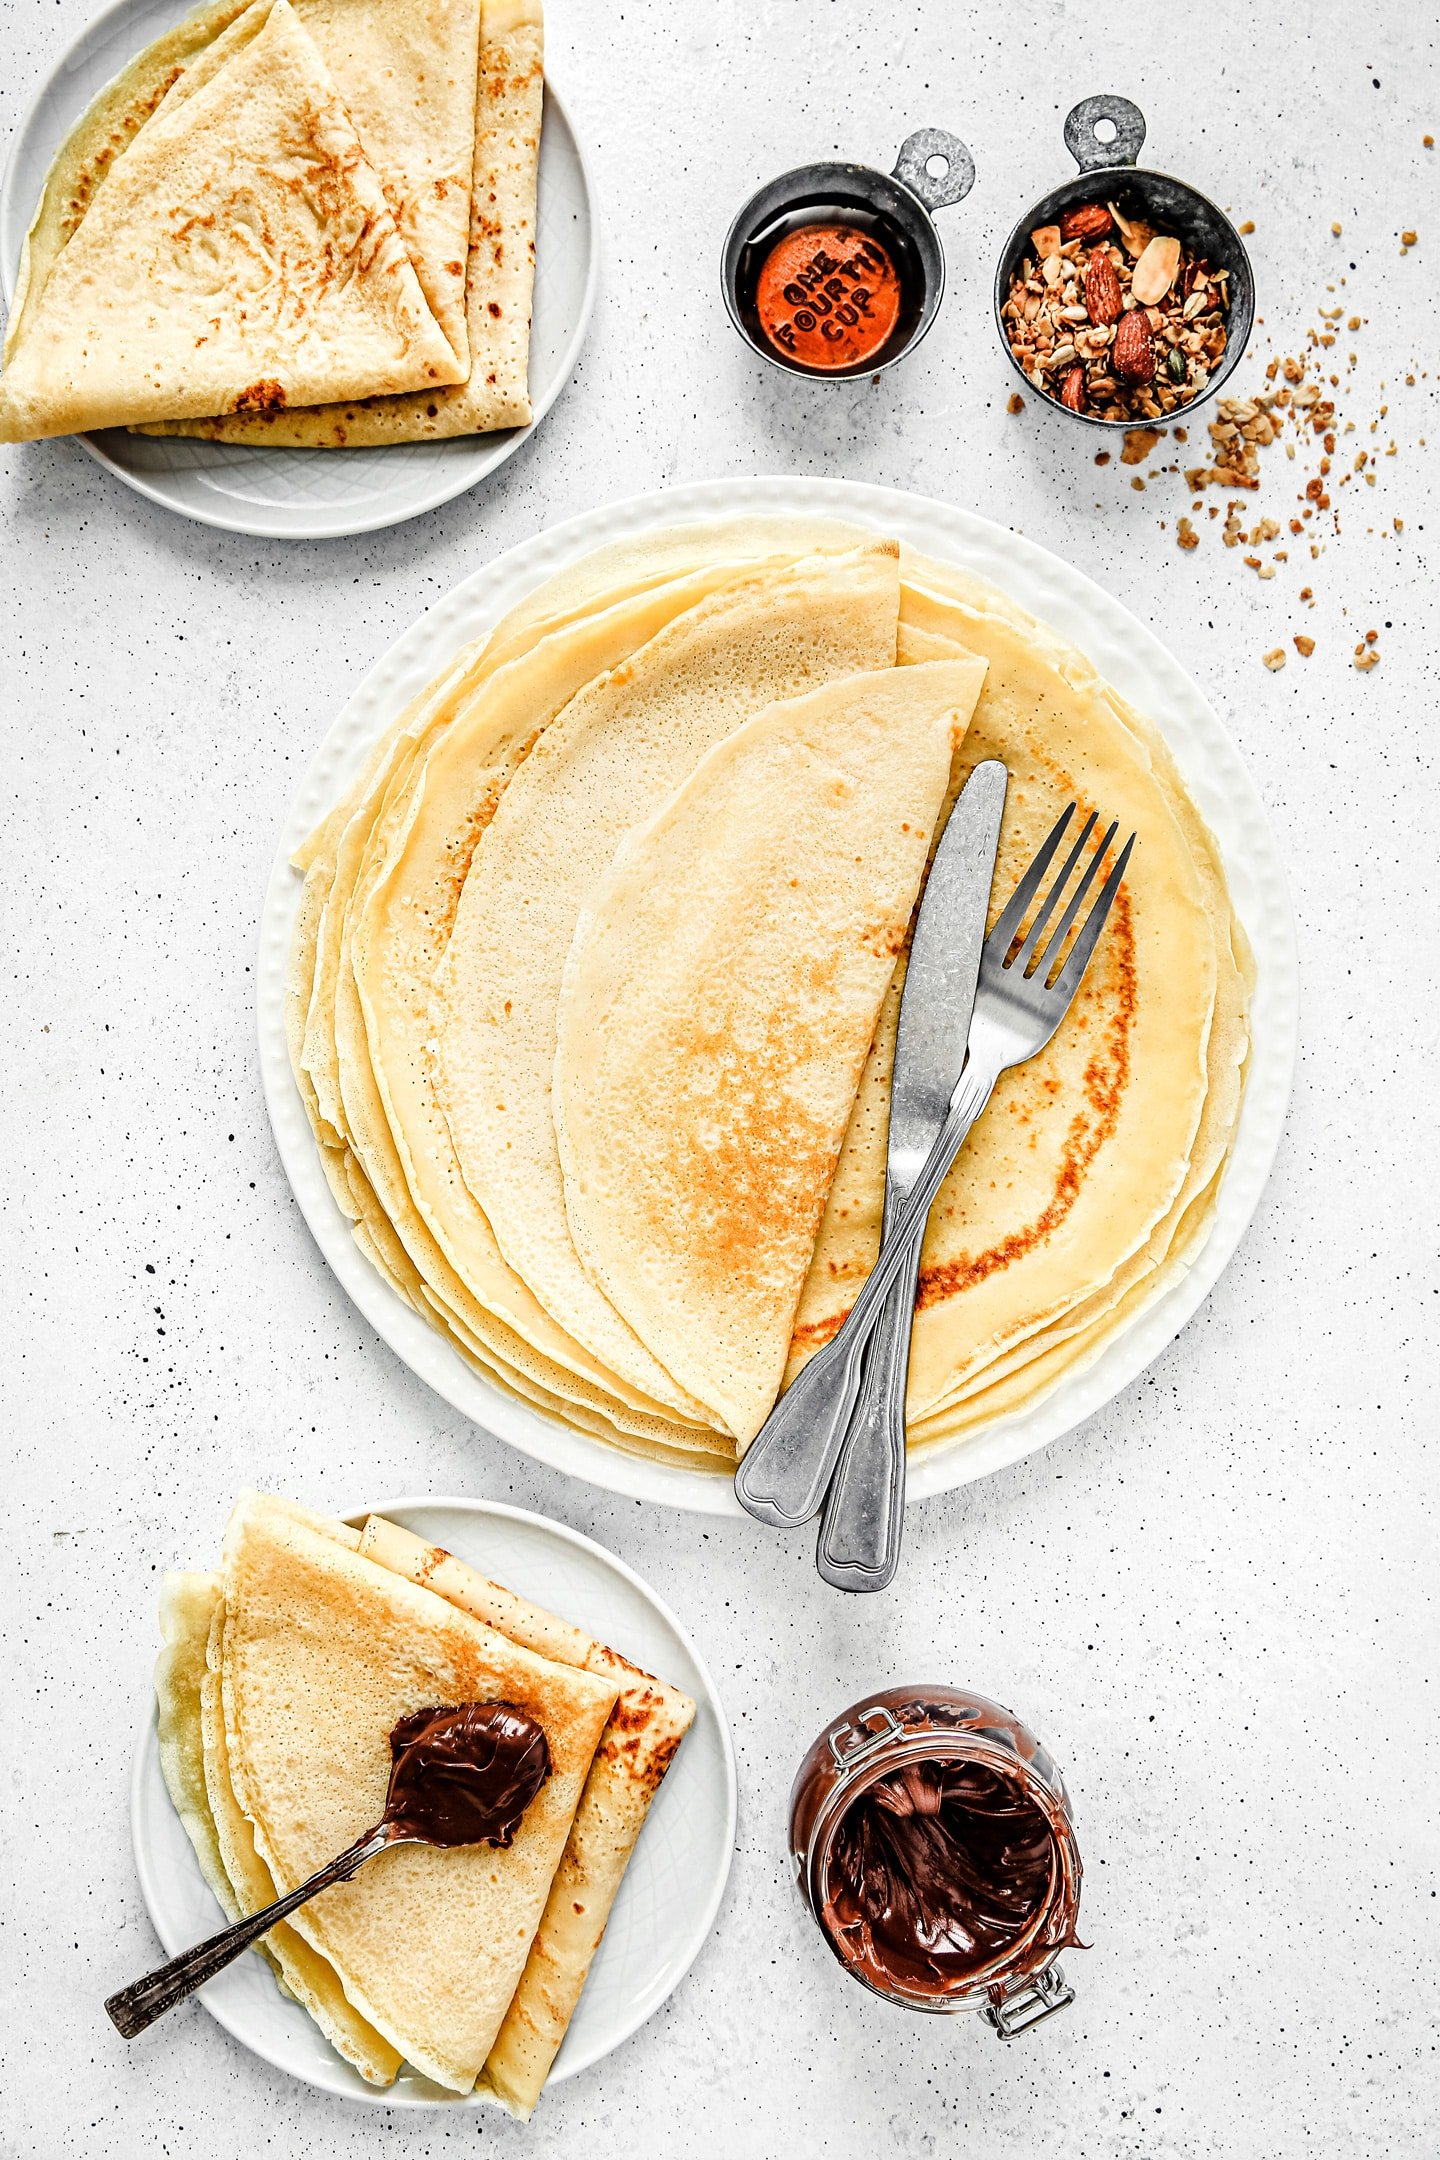 French Crepes Recipe For Simply And Easy Crepes